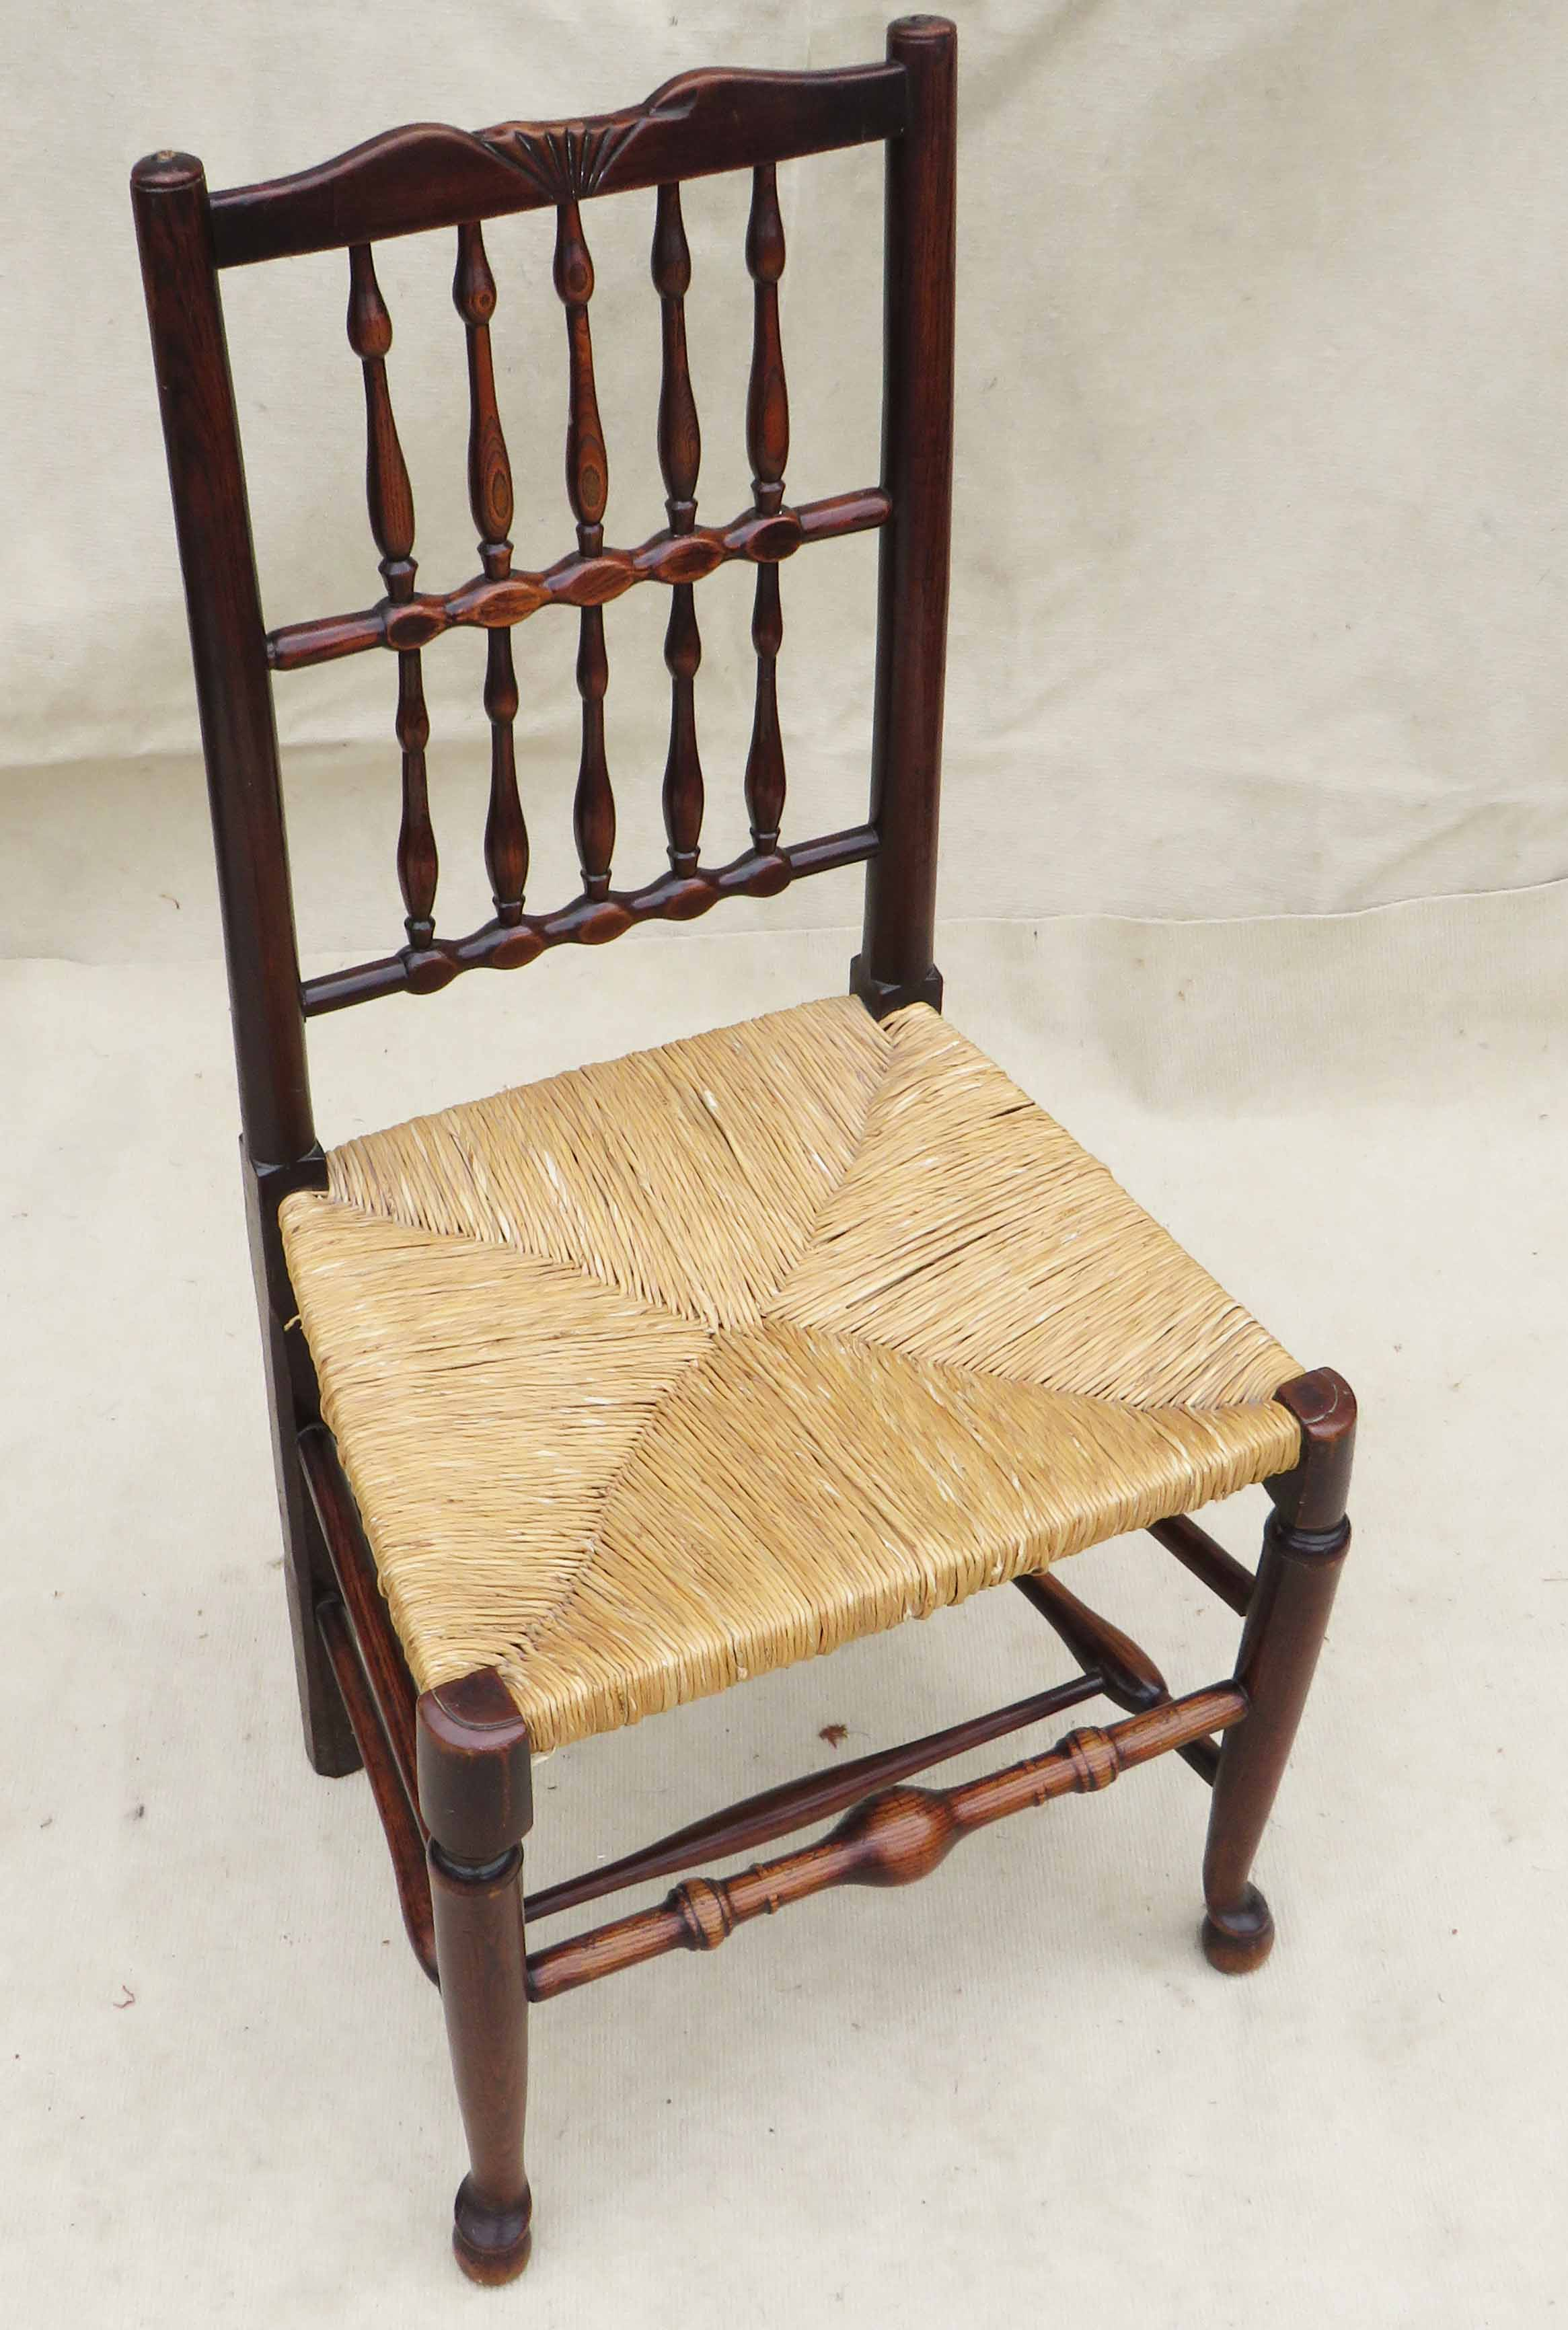 Matched Set Of 8 Spindle Back Dining Chairs, Early 19th Century - Image 8 of 12